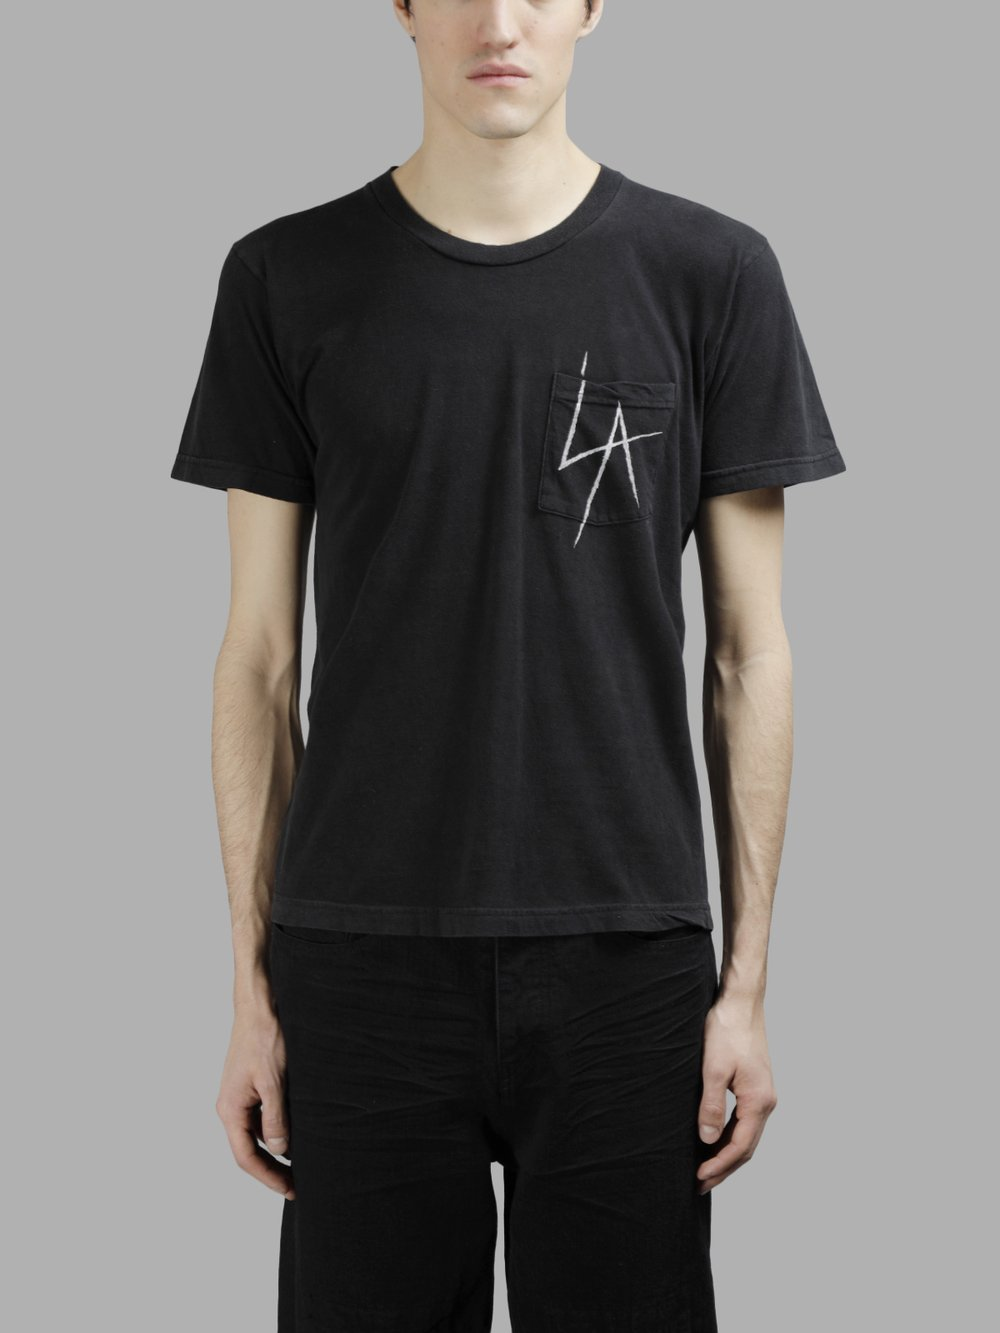 LOCAL AUTHORITY T-Shirt in Black